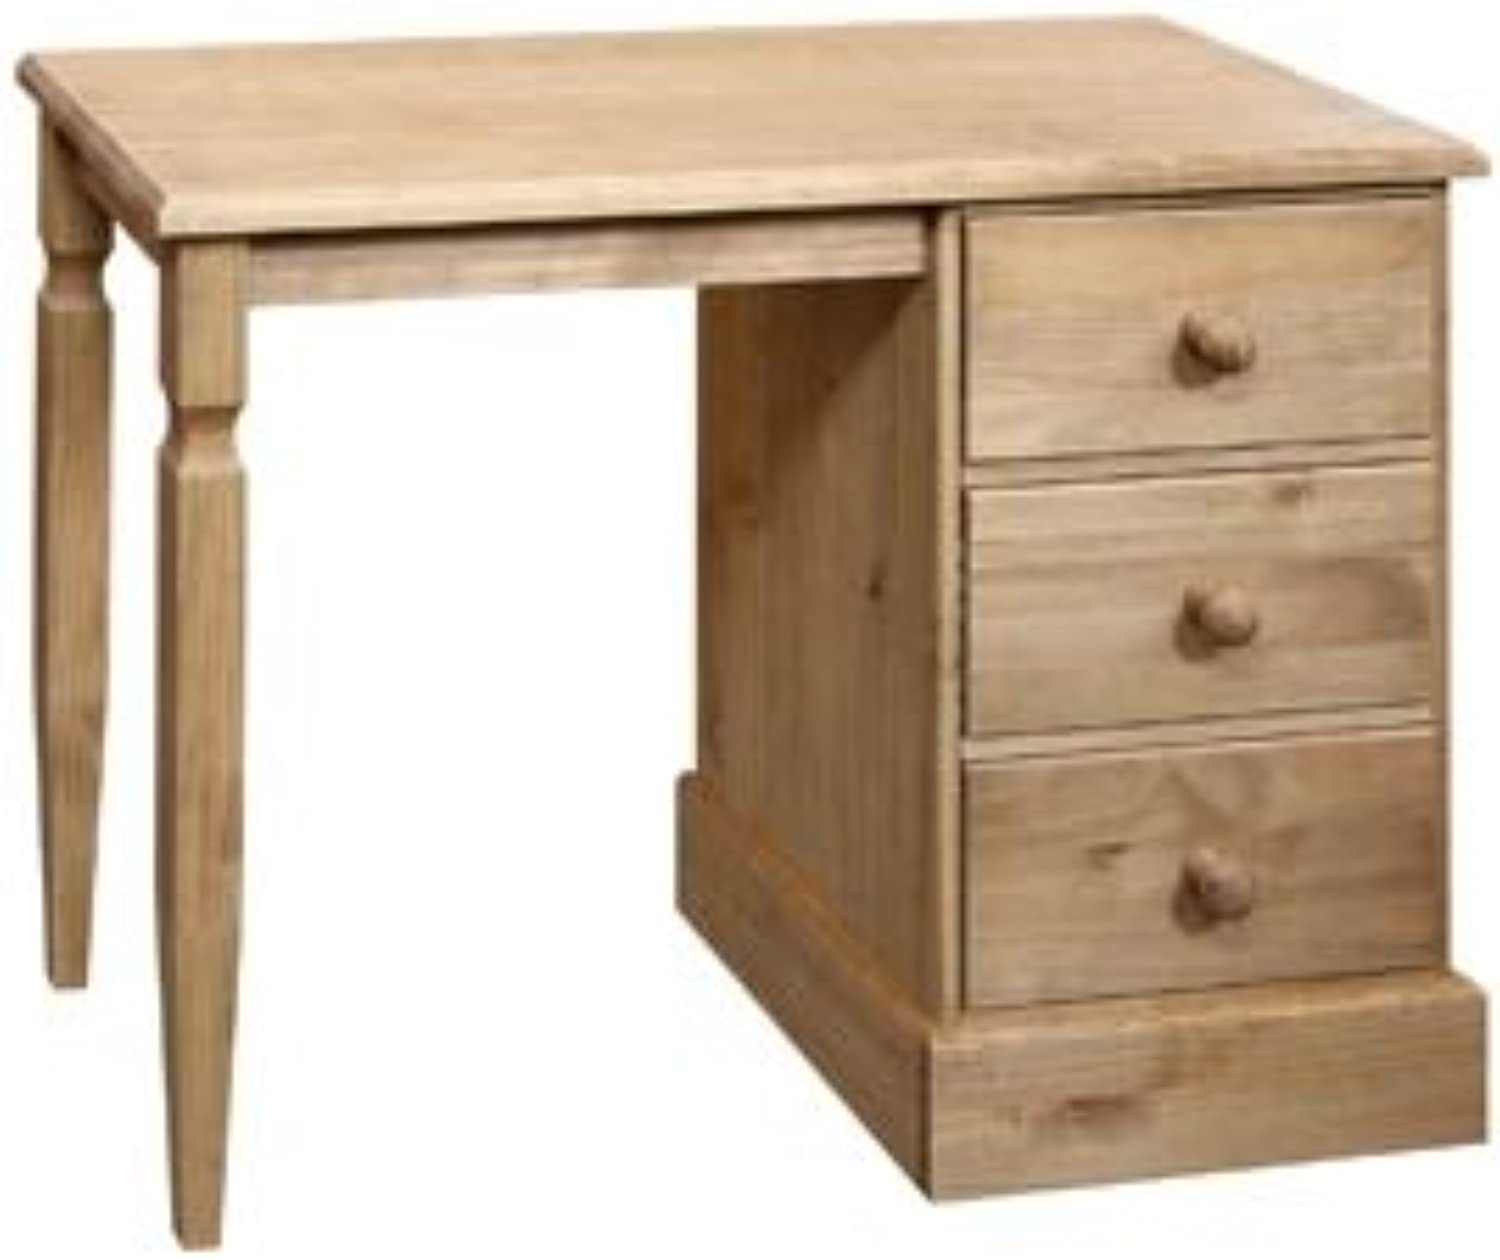 Classic Cotswold single pedestal 3 drawer dressing table desk solid wood pine